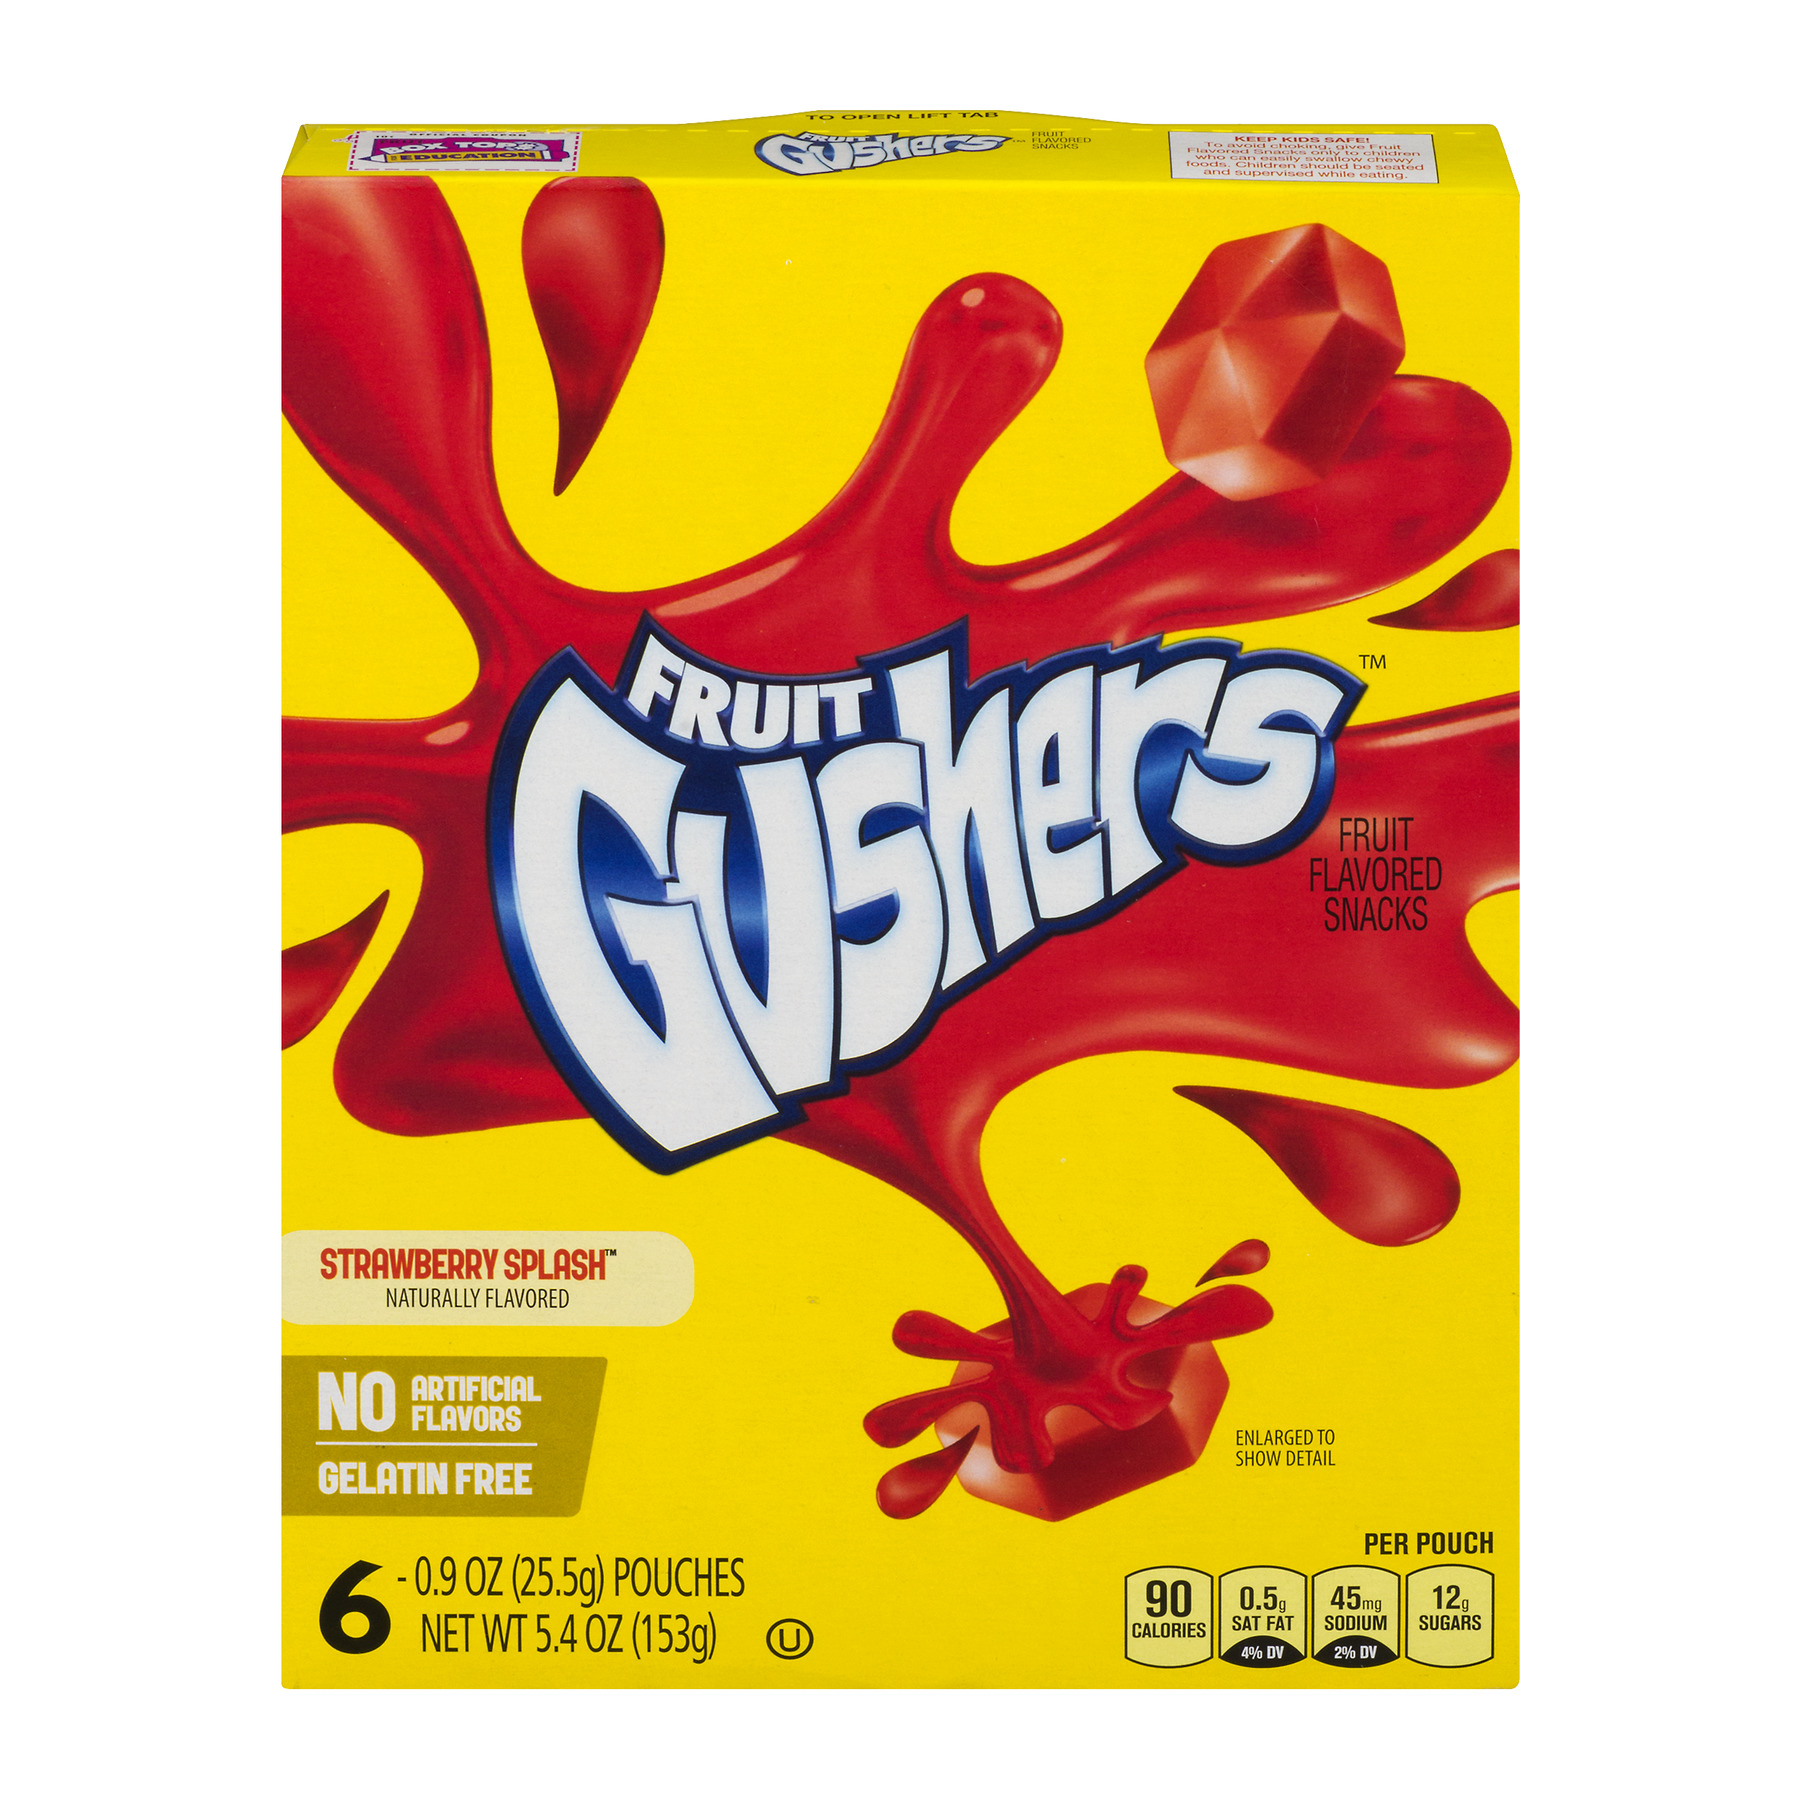 (3 Pack) Betty Crocker Fruit Gushers Strawberry Splash, 6 ct, 5.4 oz